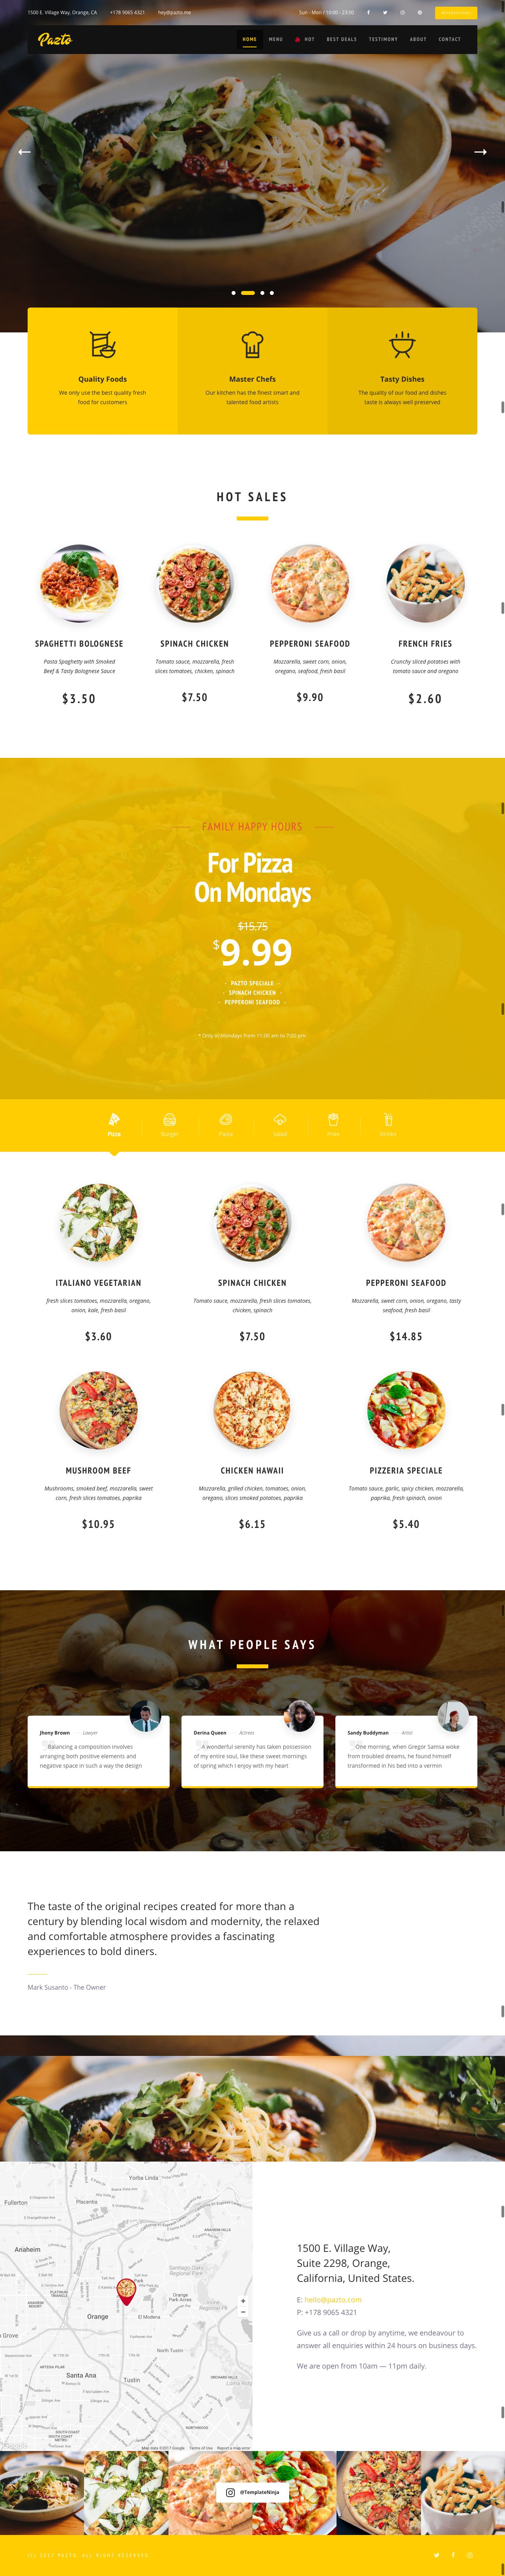 Pazto - Food And Restaurant HTML Template Screenshot 3